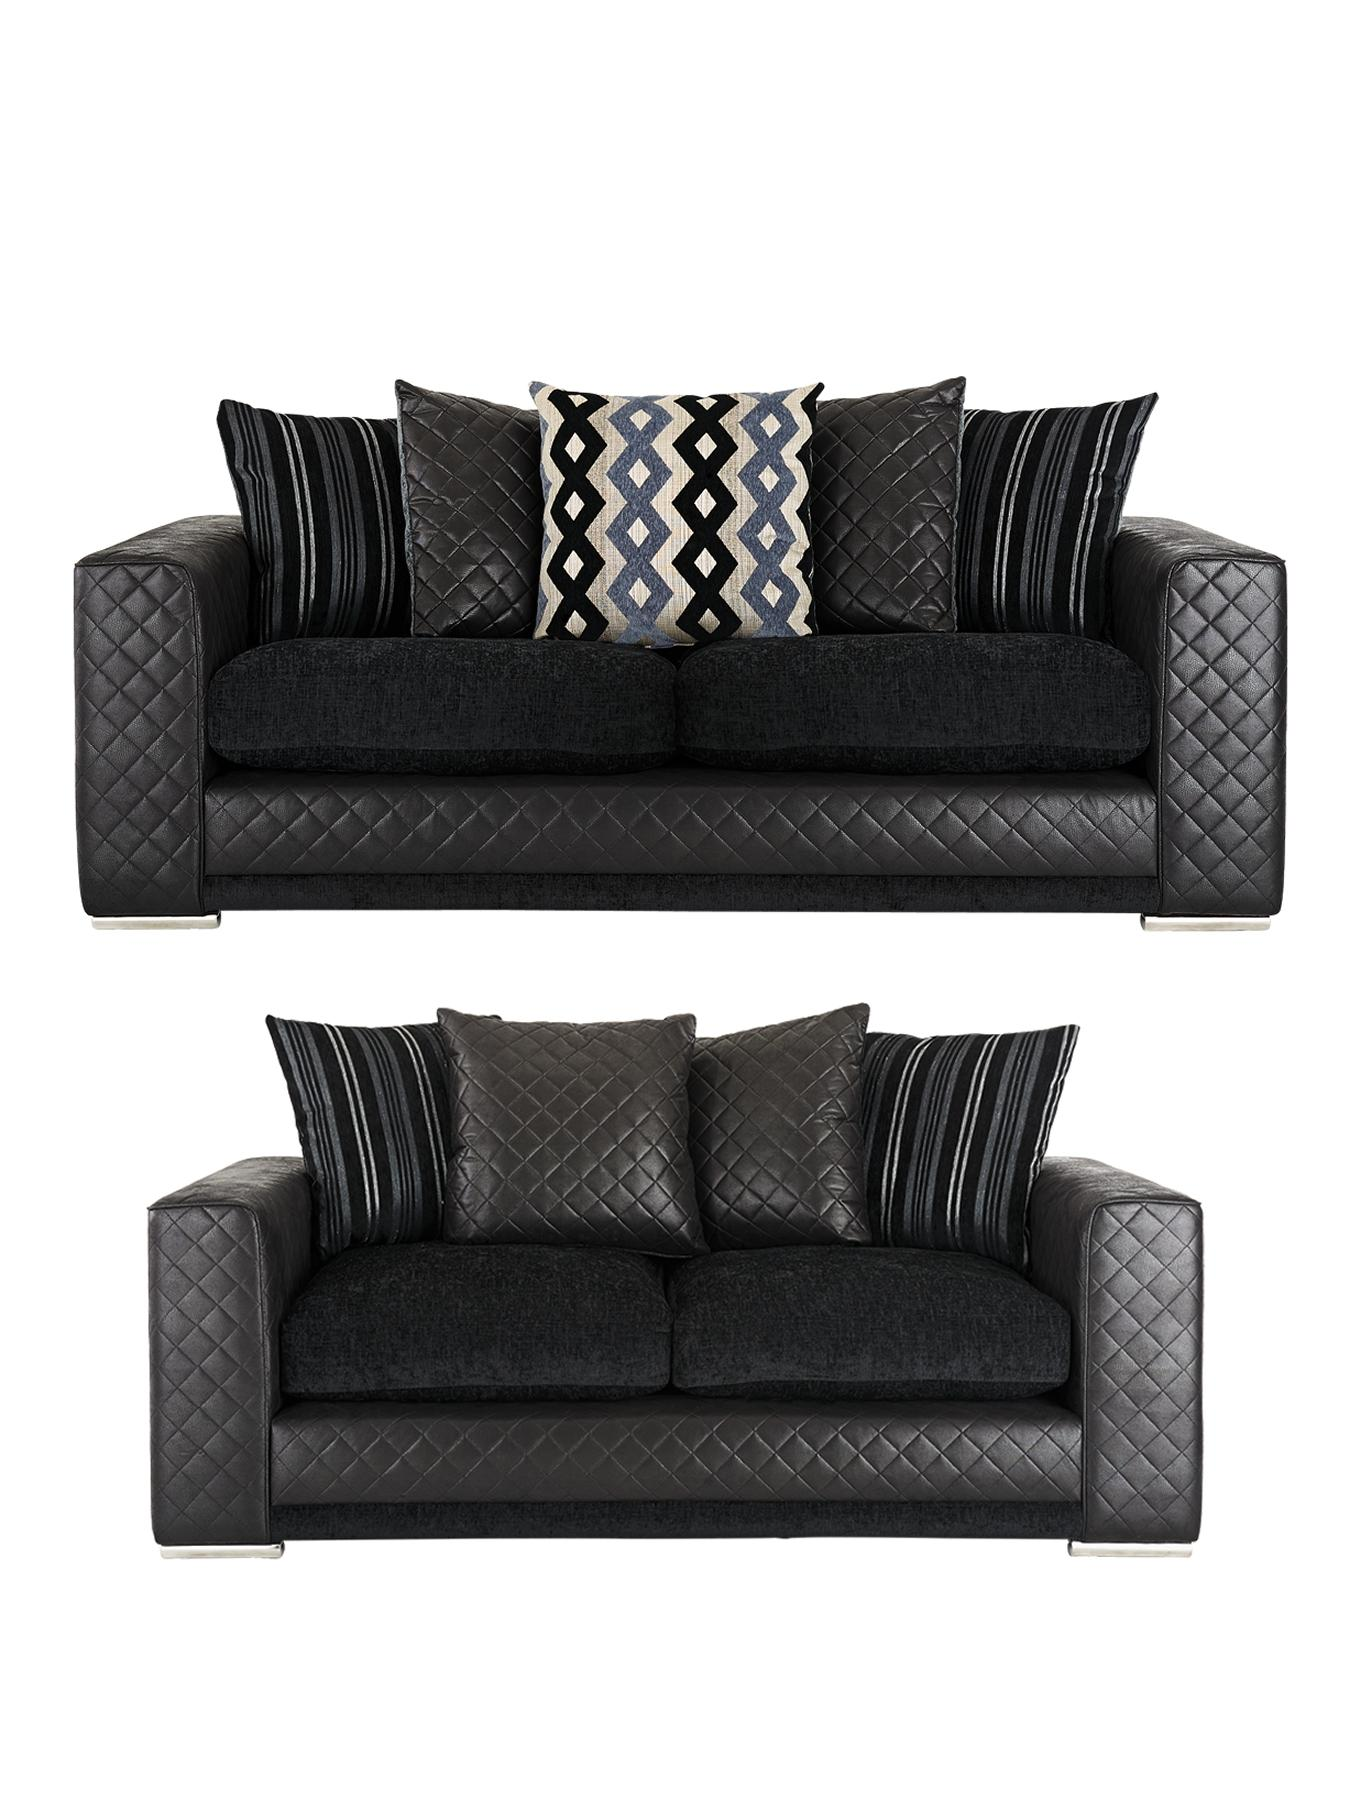 Buy cheap funky sofa compare products prices for best uk for Cheap funky furniture